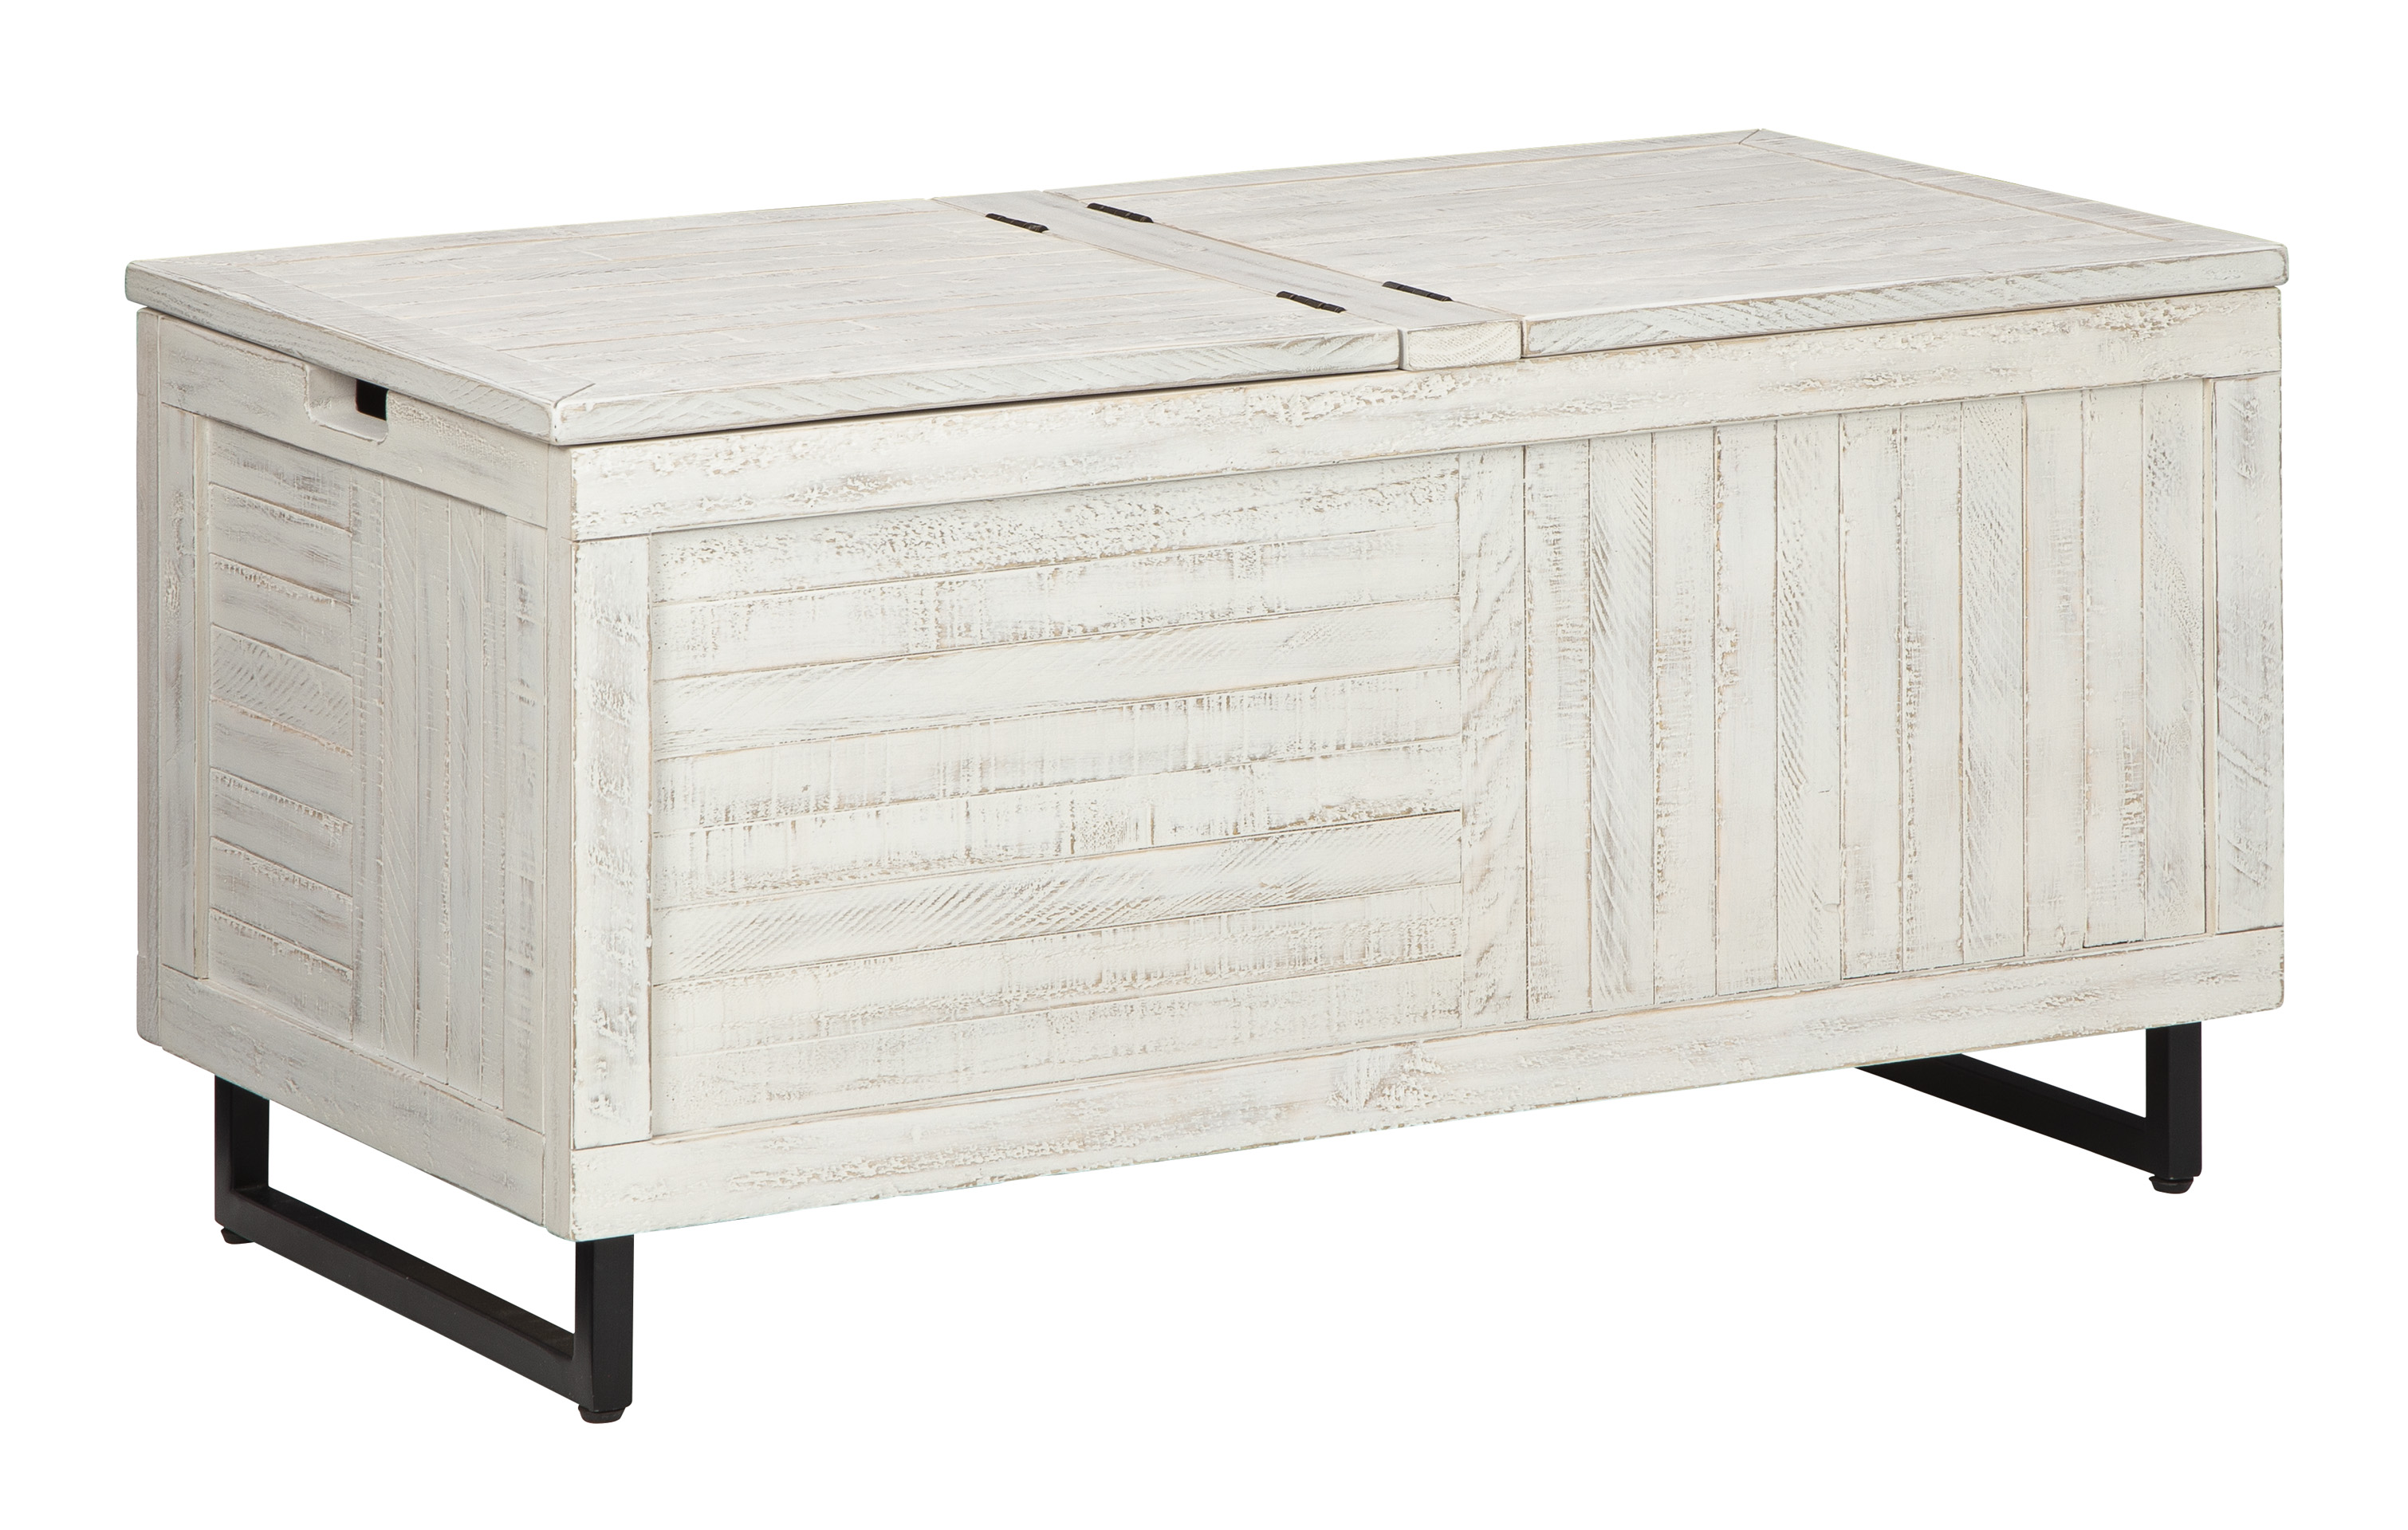 Coltport Storage Trunk by Signature Design by Ashley at Rife's Home Furniture